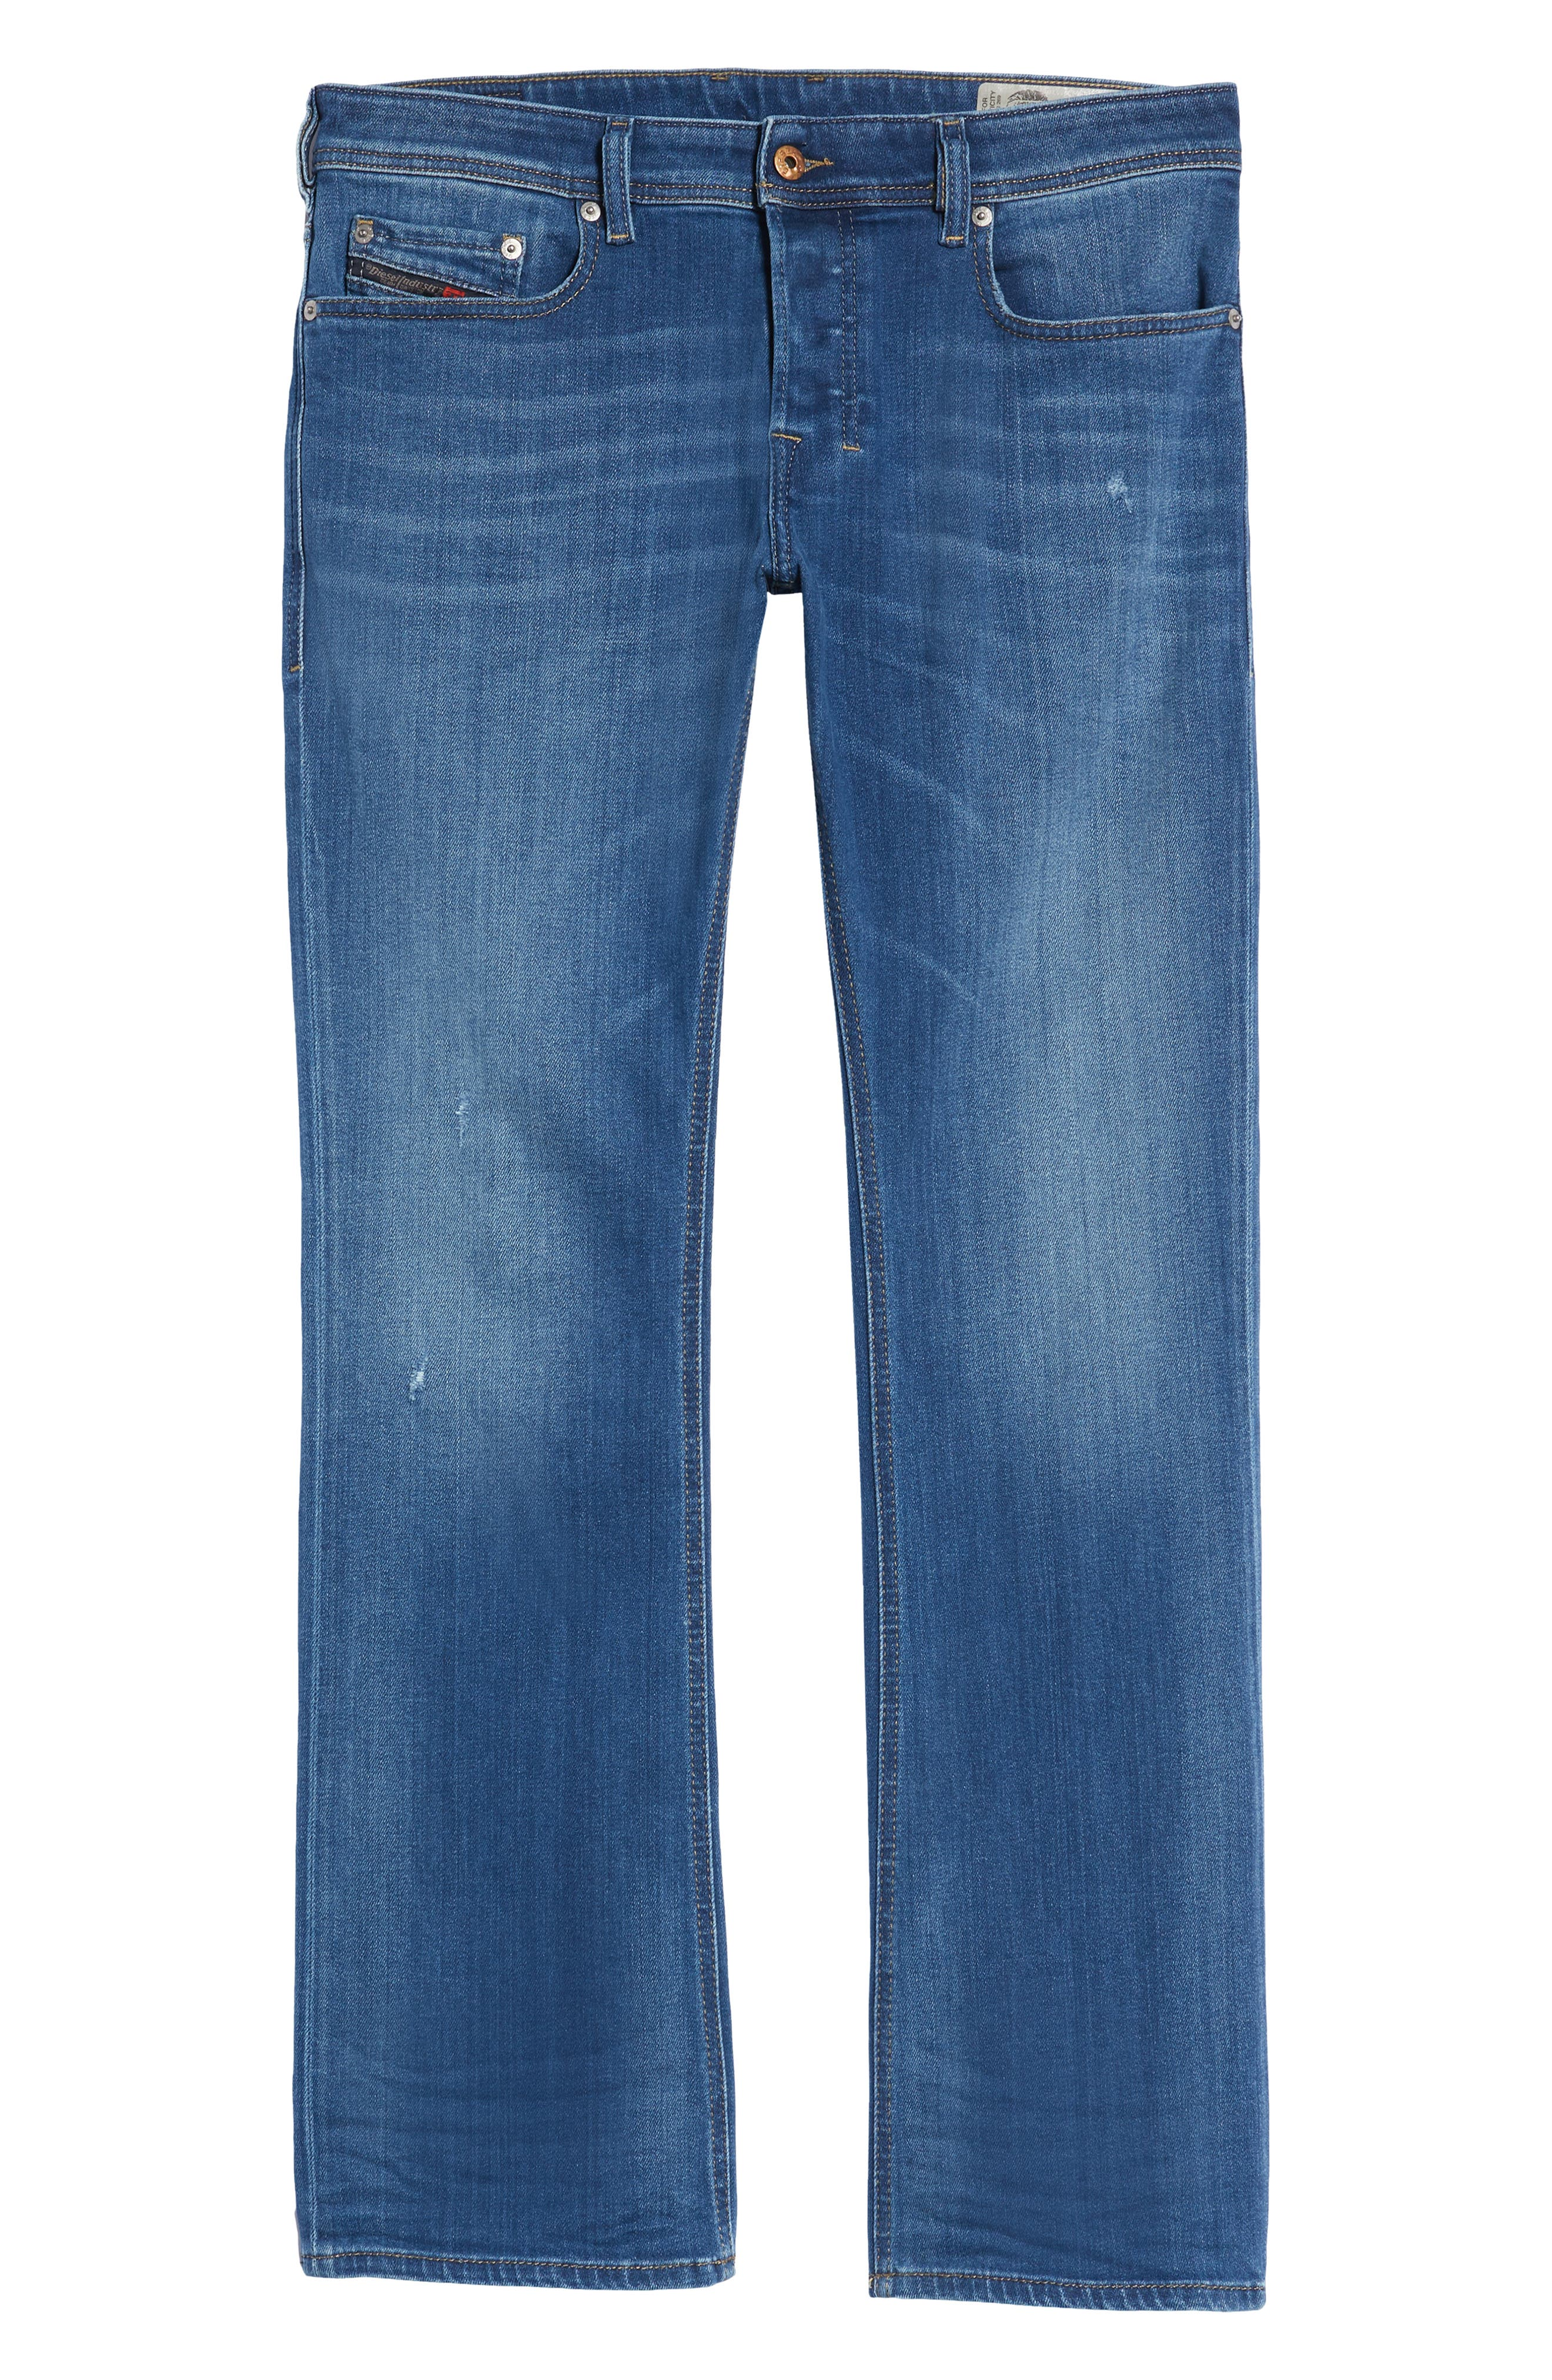 Zatiny Bootcut Jeans,                             Alternate thumbnail 6, color,